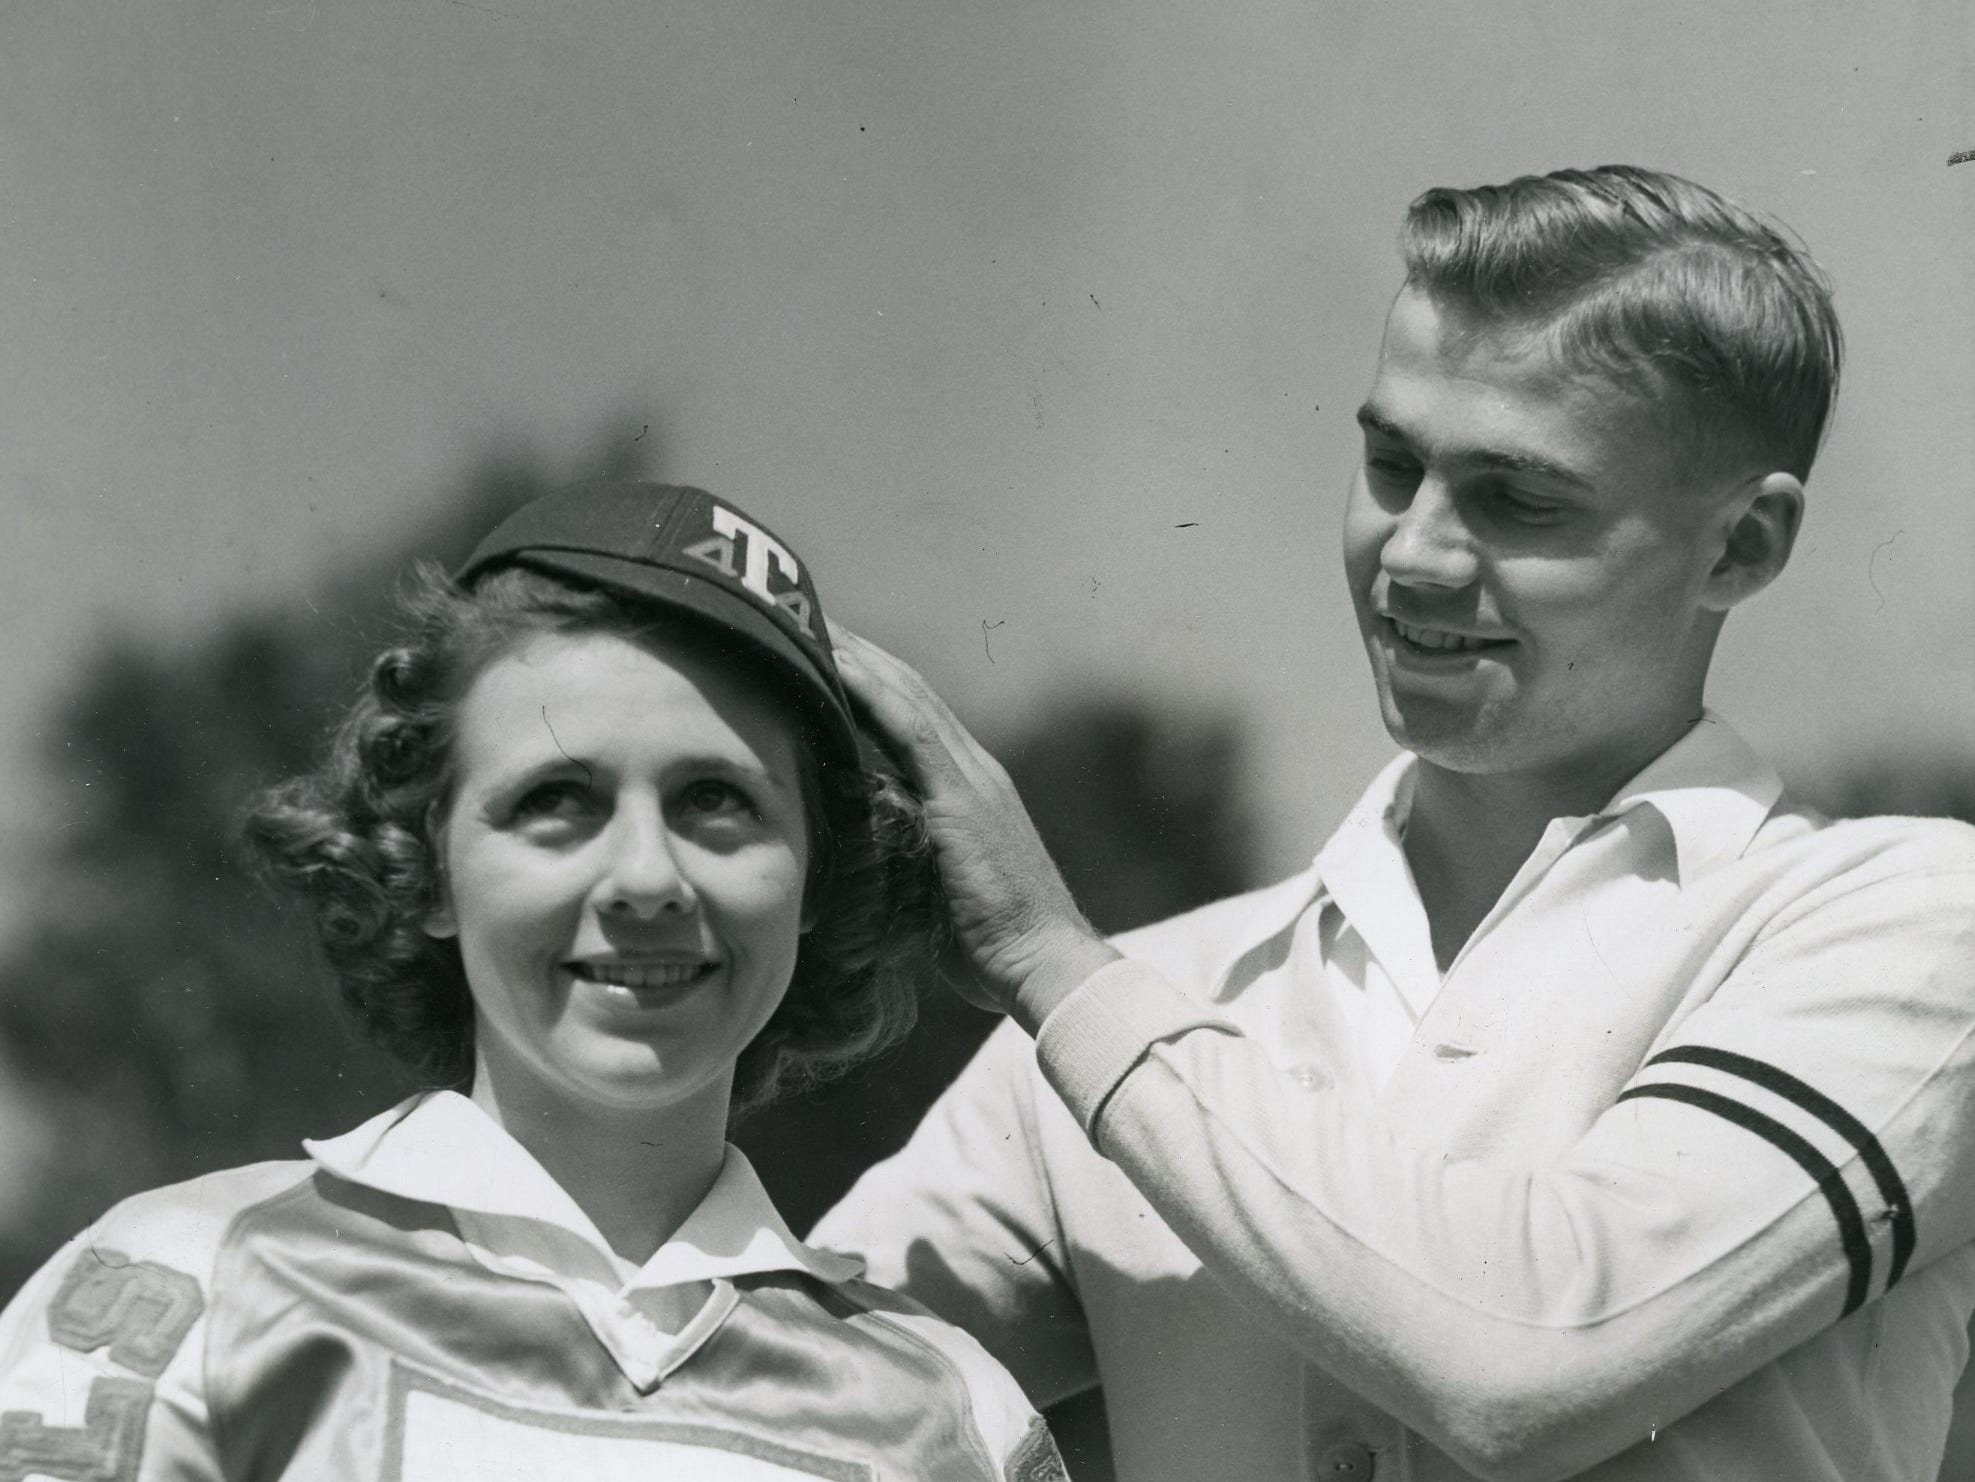 UT cheerleaders Fay Griffin and Ted Cook, October, 1940.